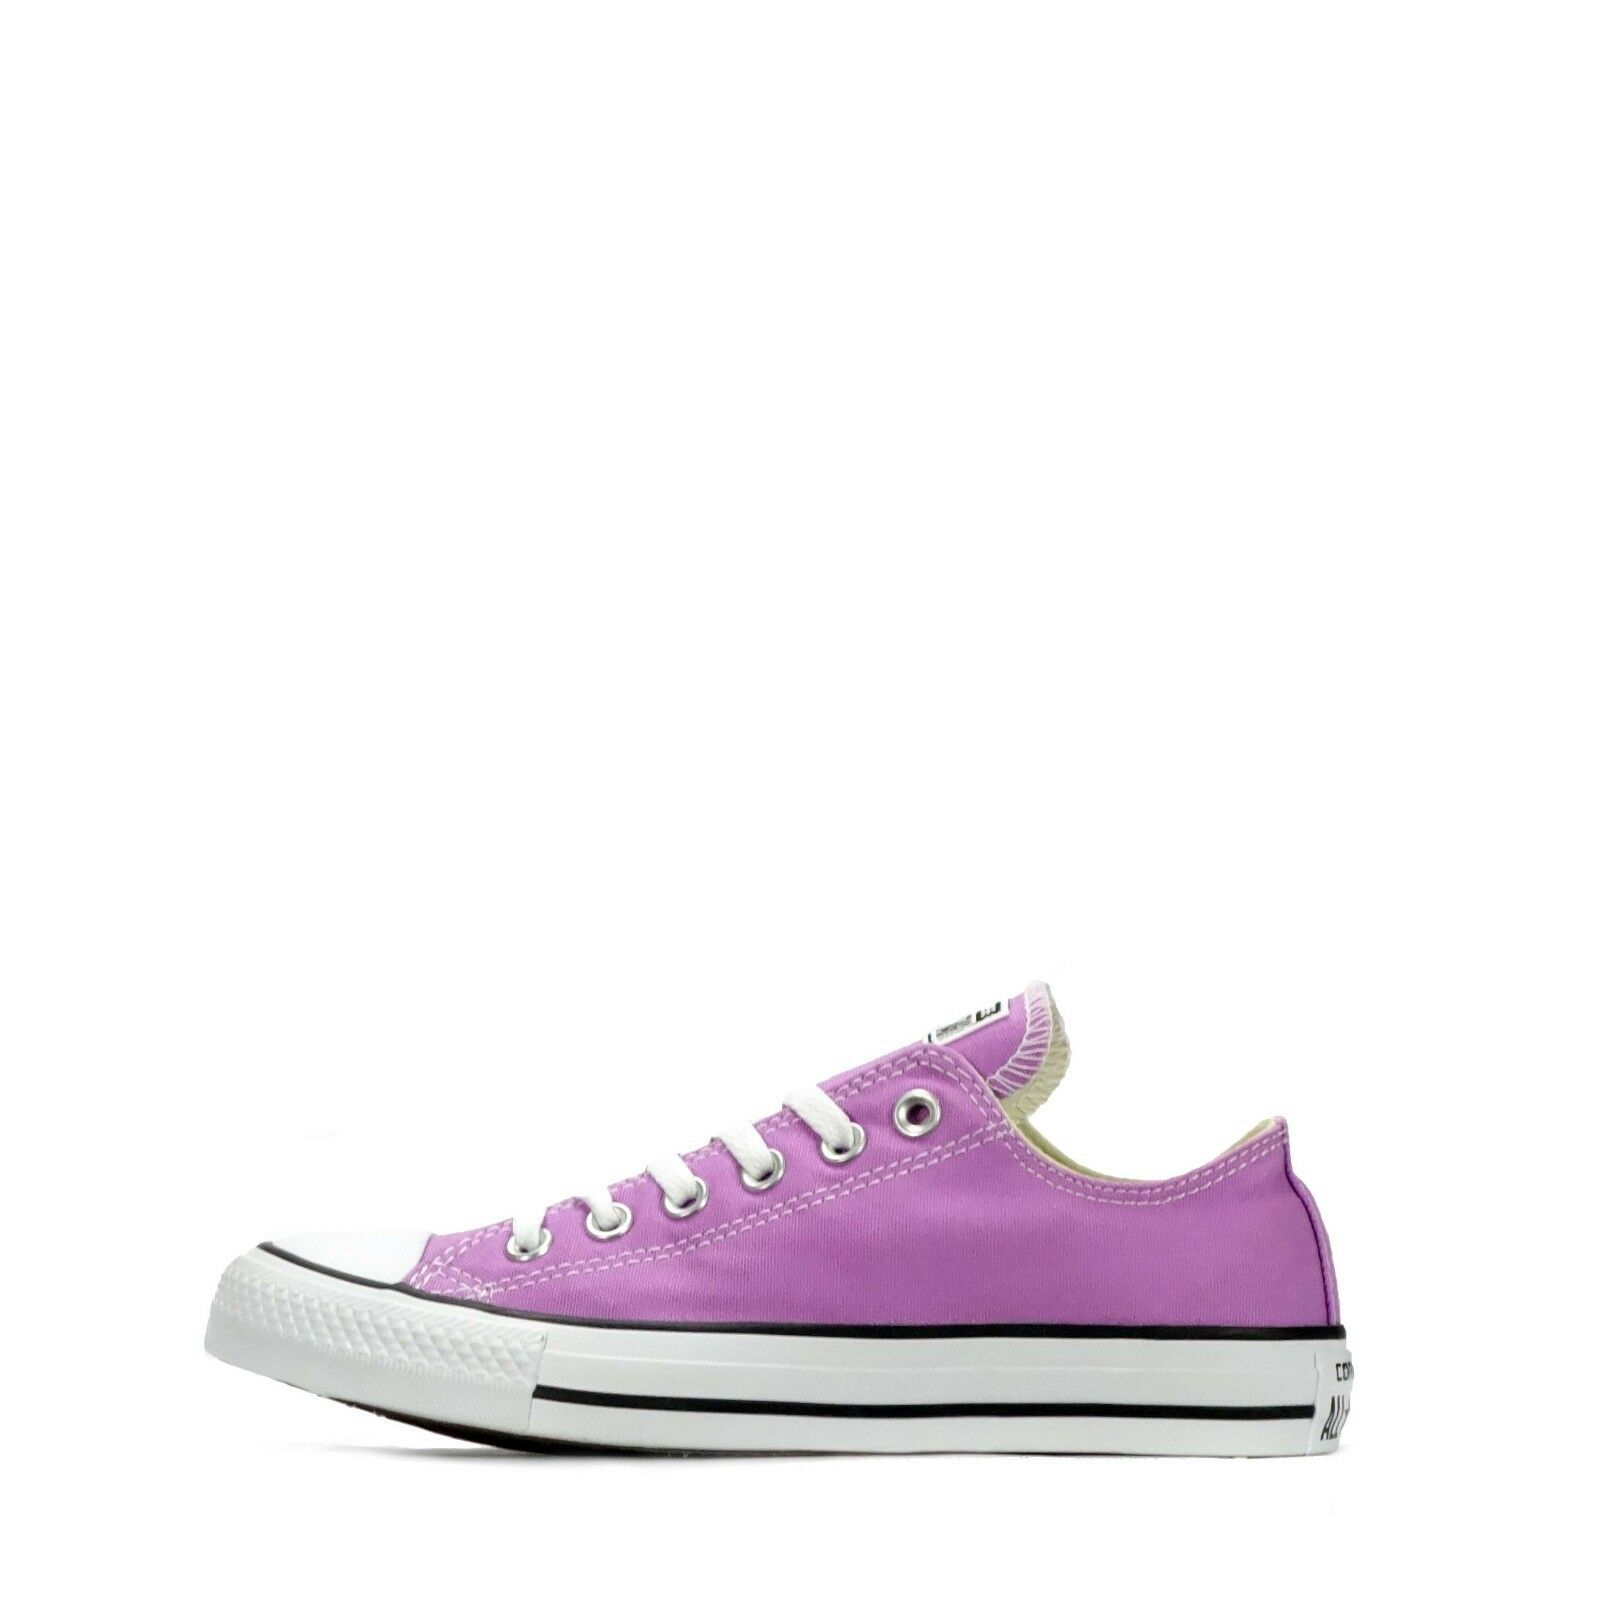 Converse Chuck Taylor All Star Ox Unisex Lace up shoes Plimsolls Fuchsia Glow